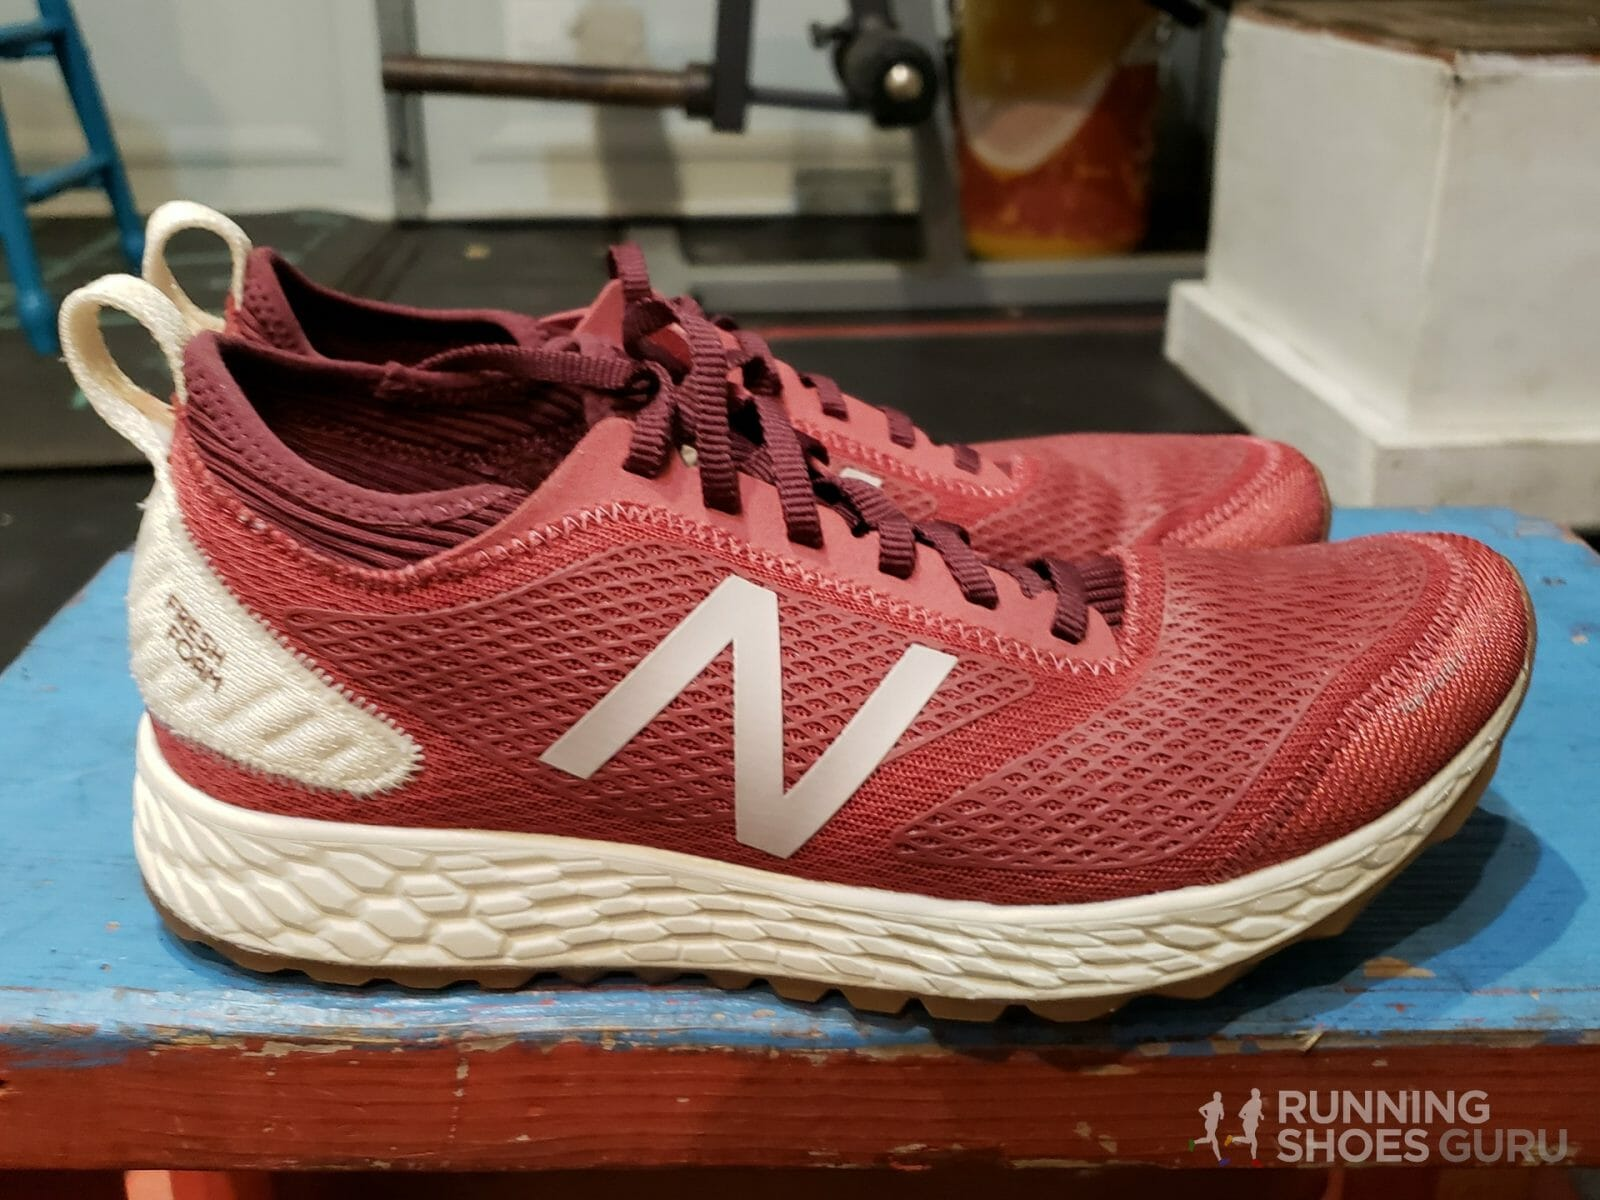 sale retailer fe113 33499 New Balance Fresh Foam Gobi v3 Review   Running Shoes Guru